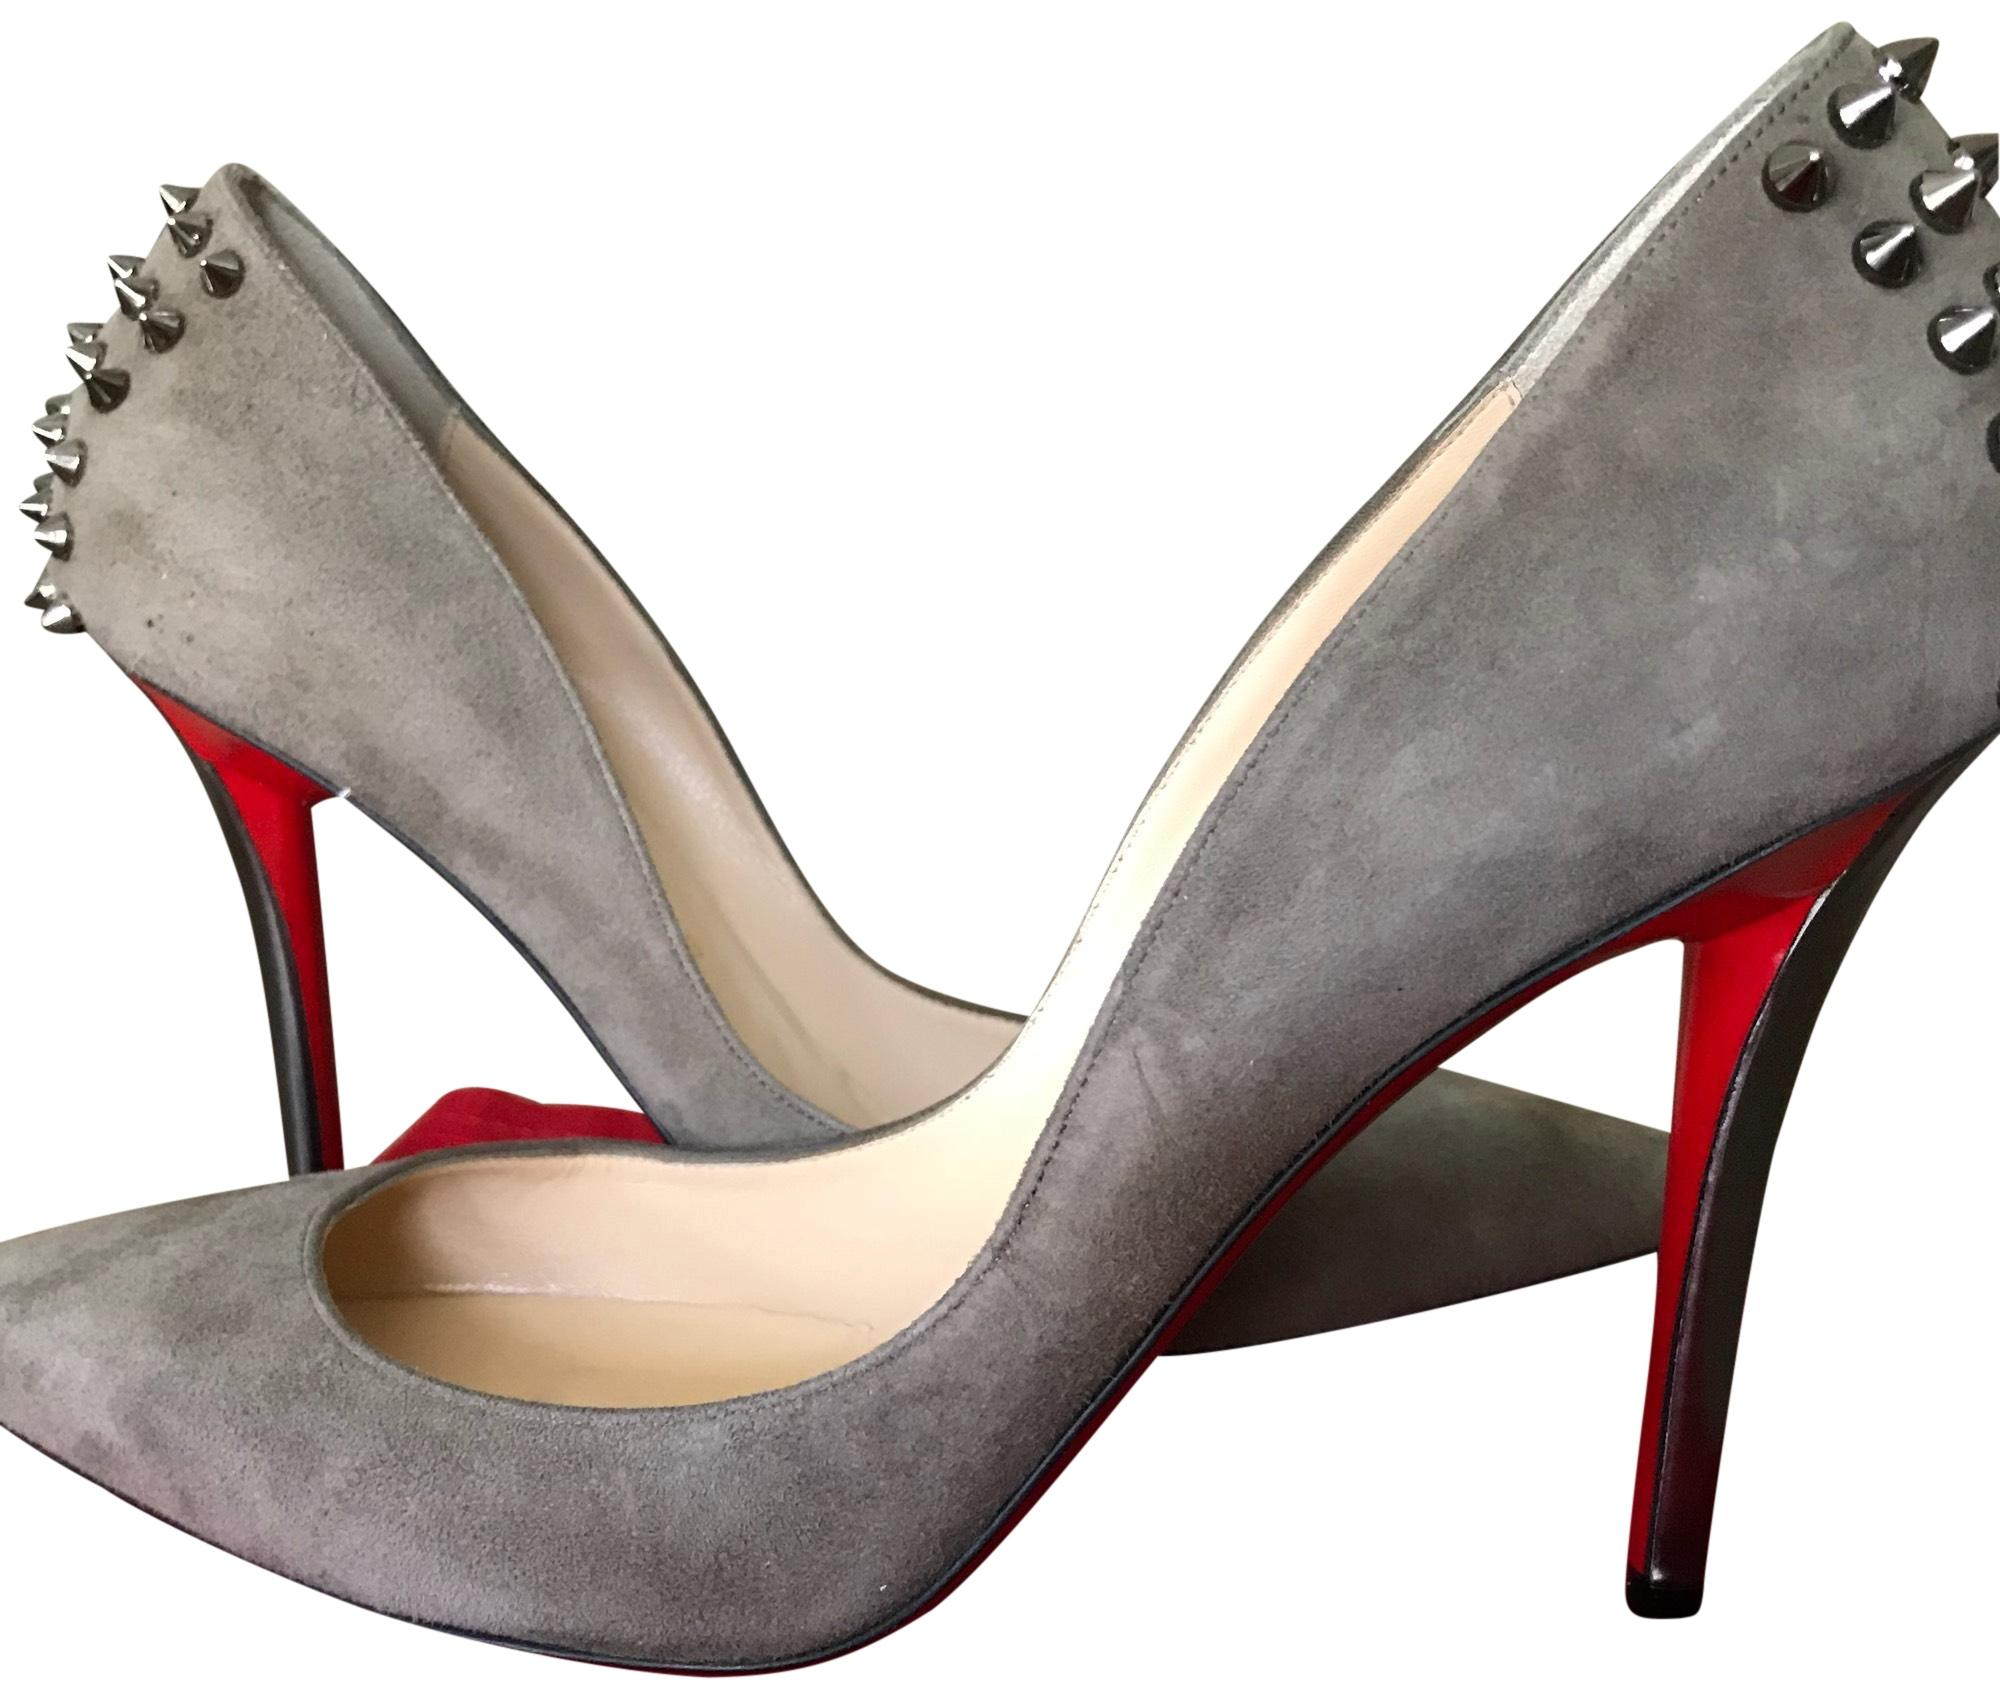 a72ccc63a20 Christian Louboutin Taupe Zappa 100 Pumps Size EU 40.5 (Approx. (Approx. ( Approx. US 10.5) Regular (M